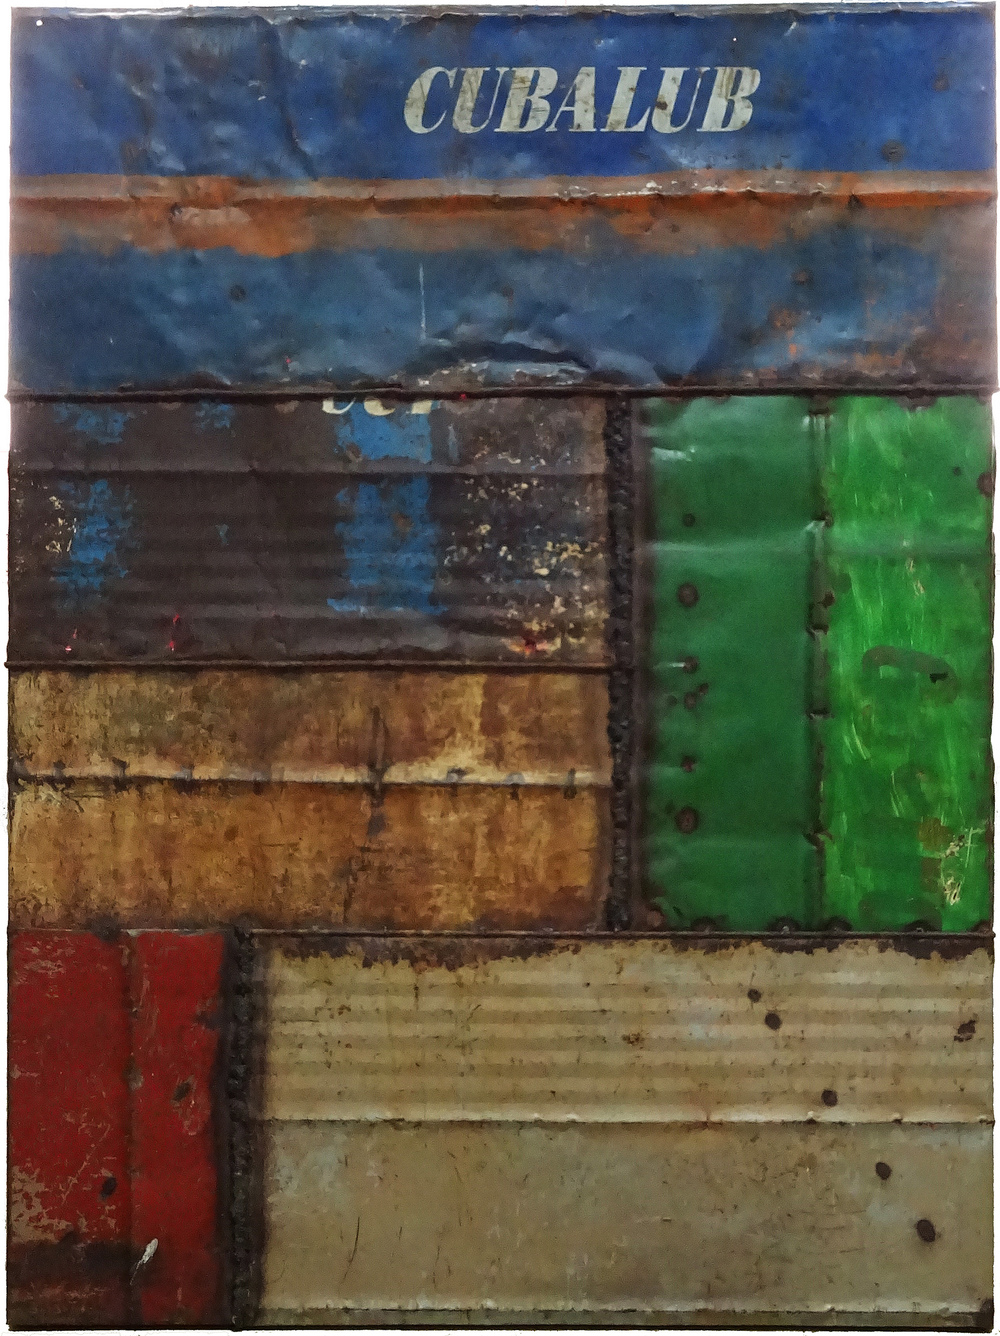 Roberto Diago,  Untitled  (from the series  Variaciones de Oggun ), 2010 Mixed media, 78-3/4 x 59-1/16 inches